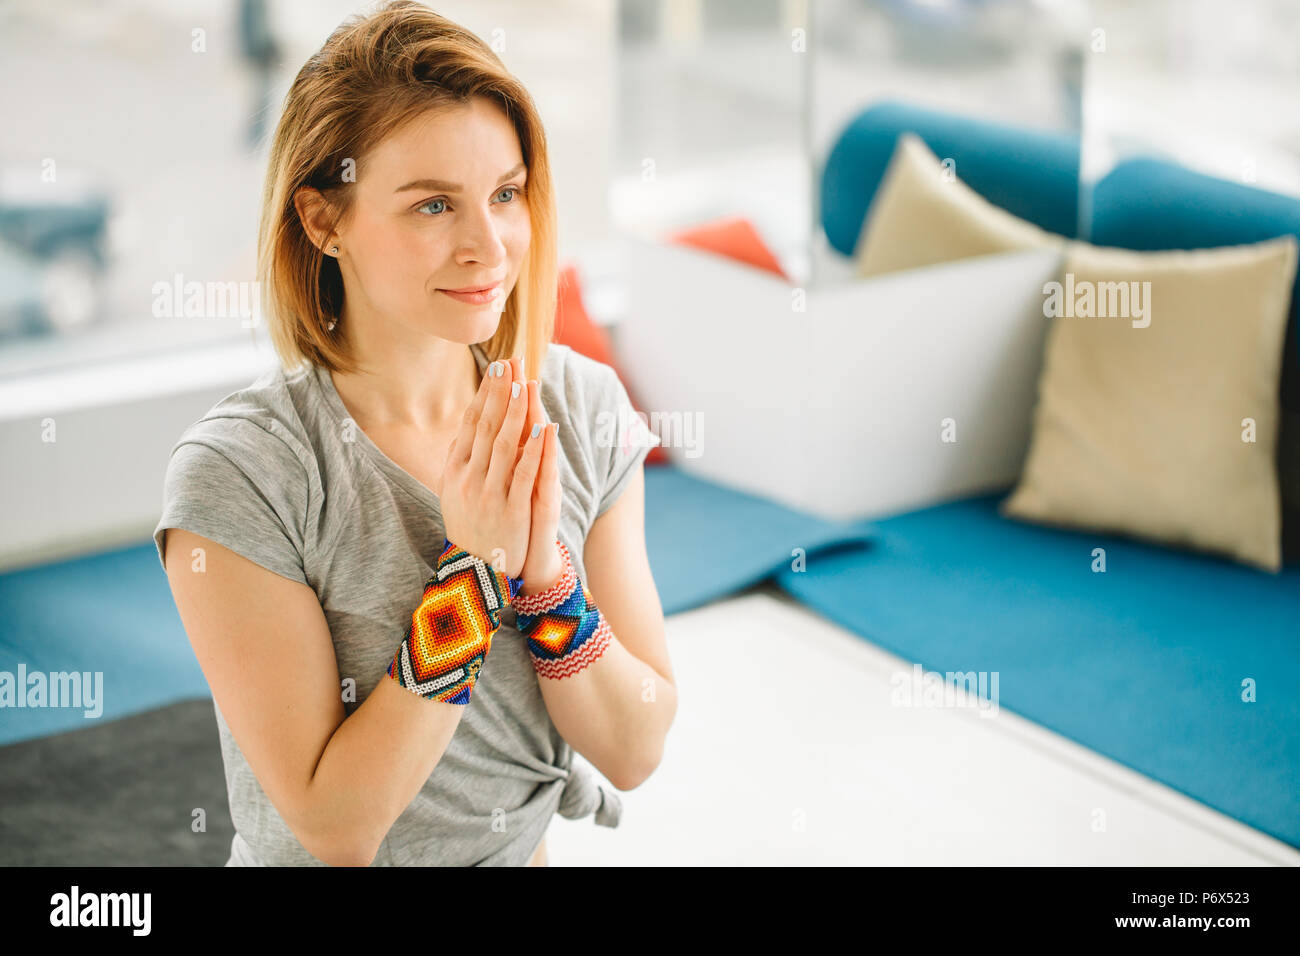 Portrait Of Blonde Yogi Teacher Thanking Or Greeting Her Pupils With